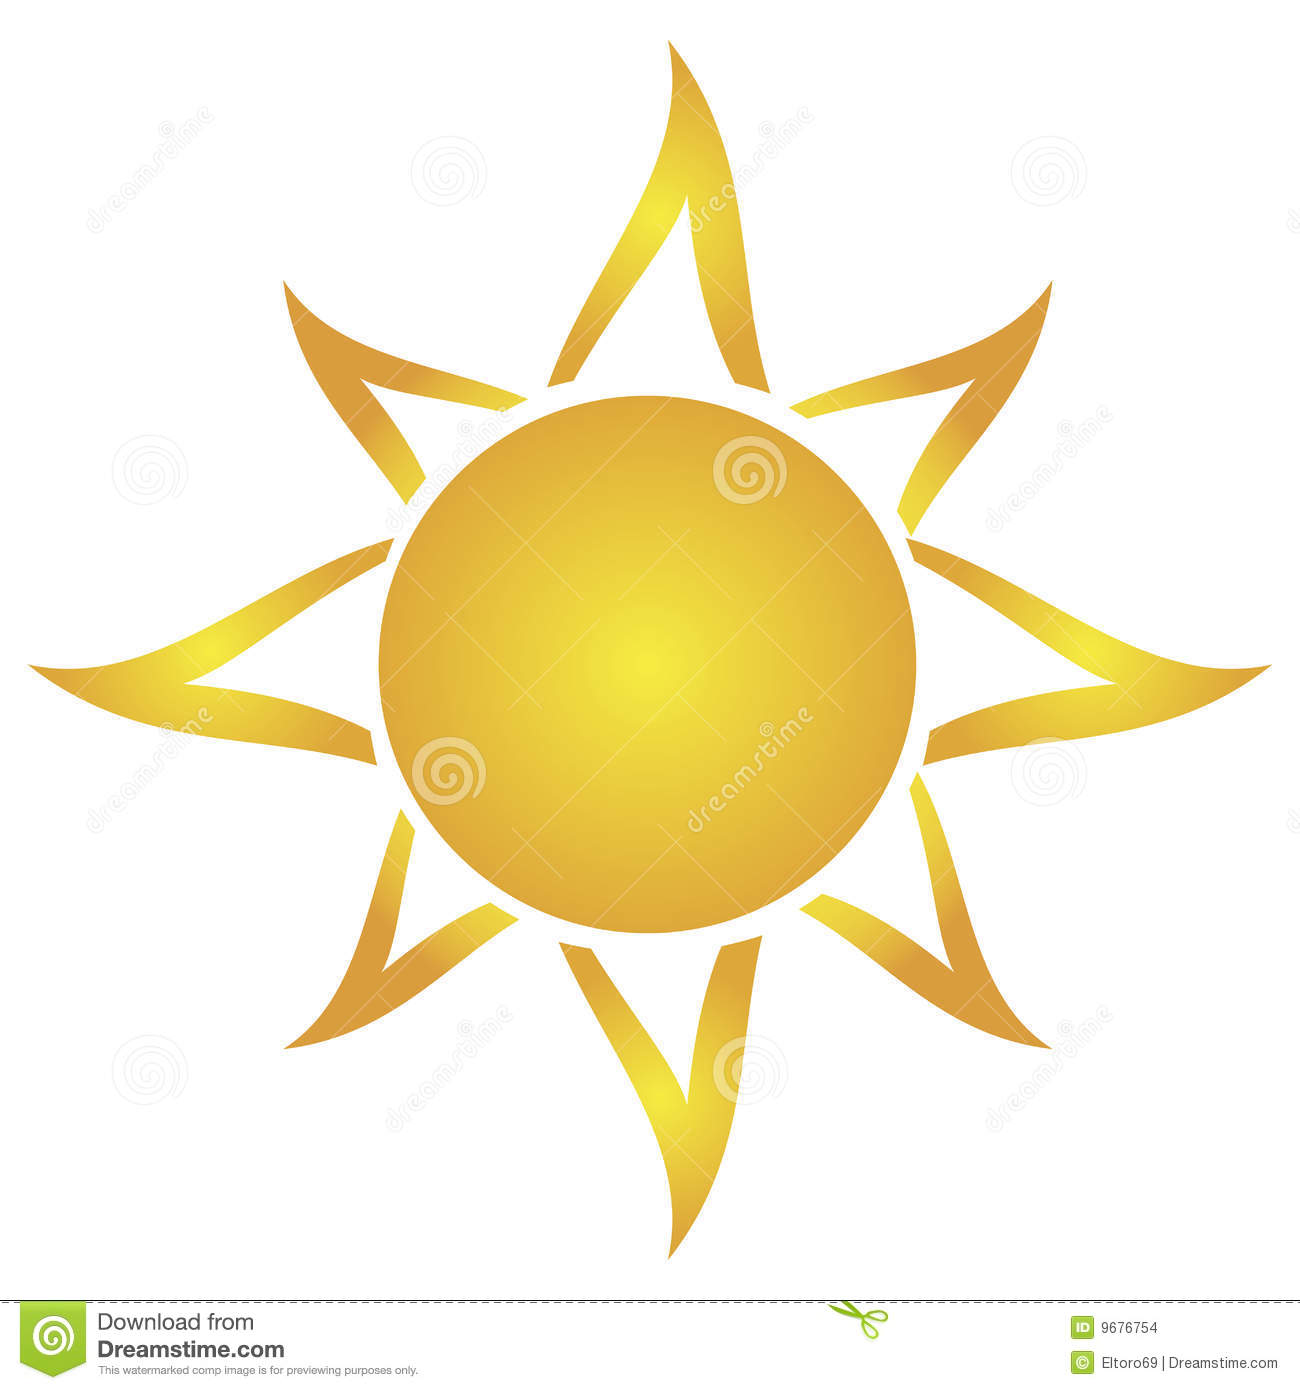 Artistic Drawing Sun Stock Images - Image: 9676754